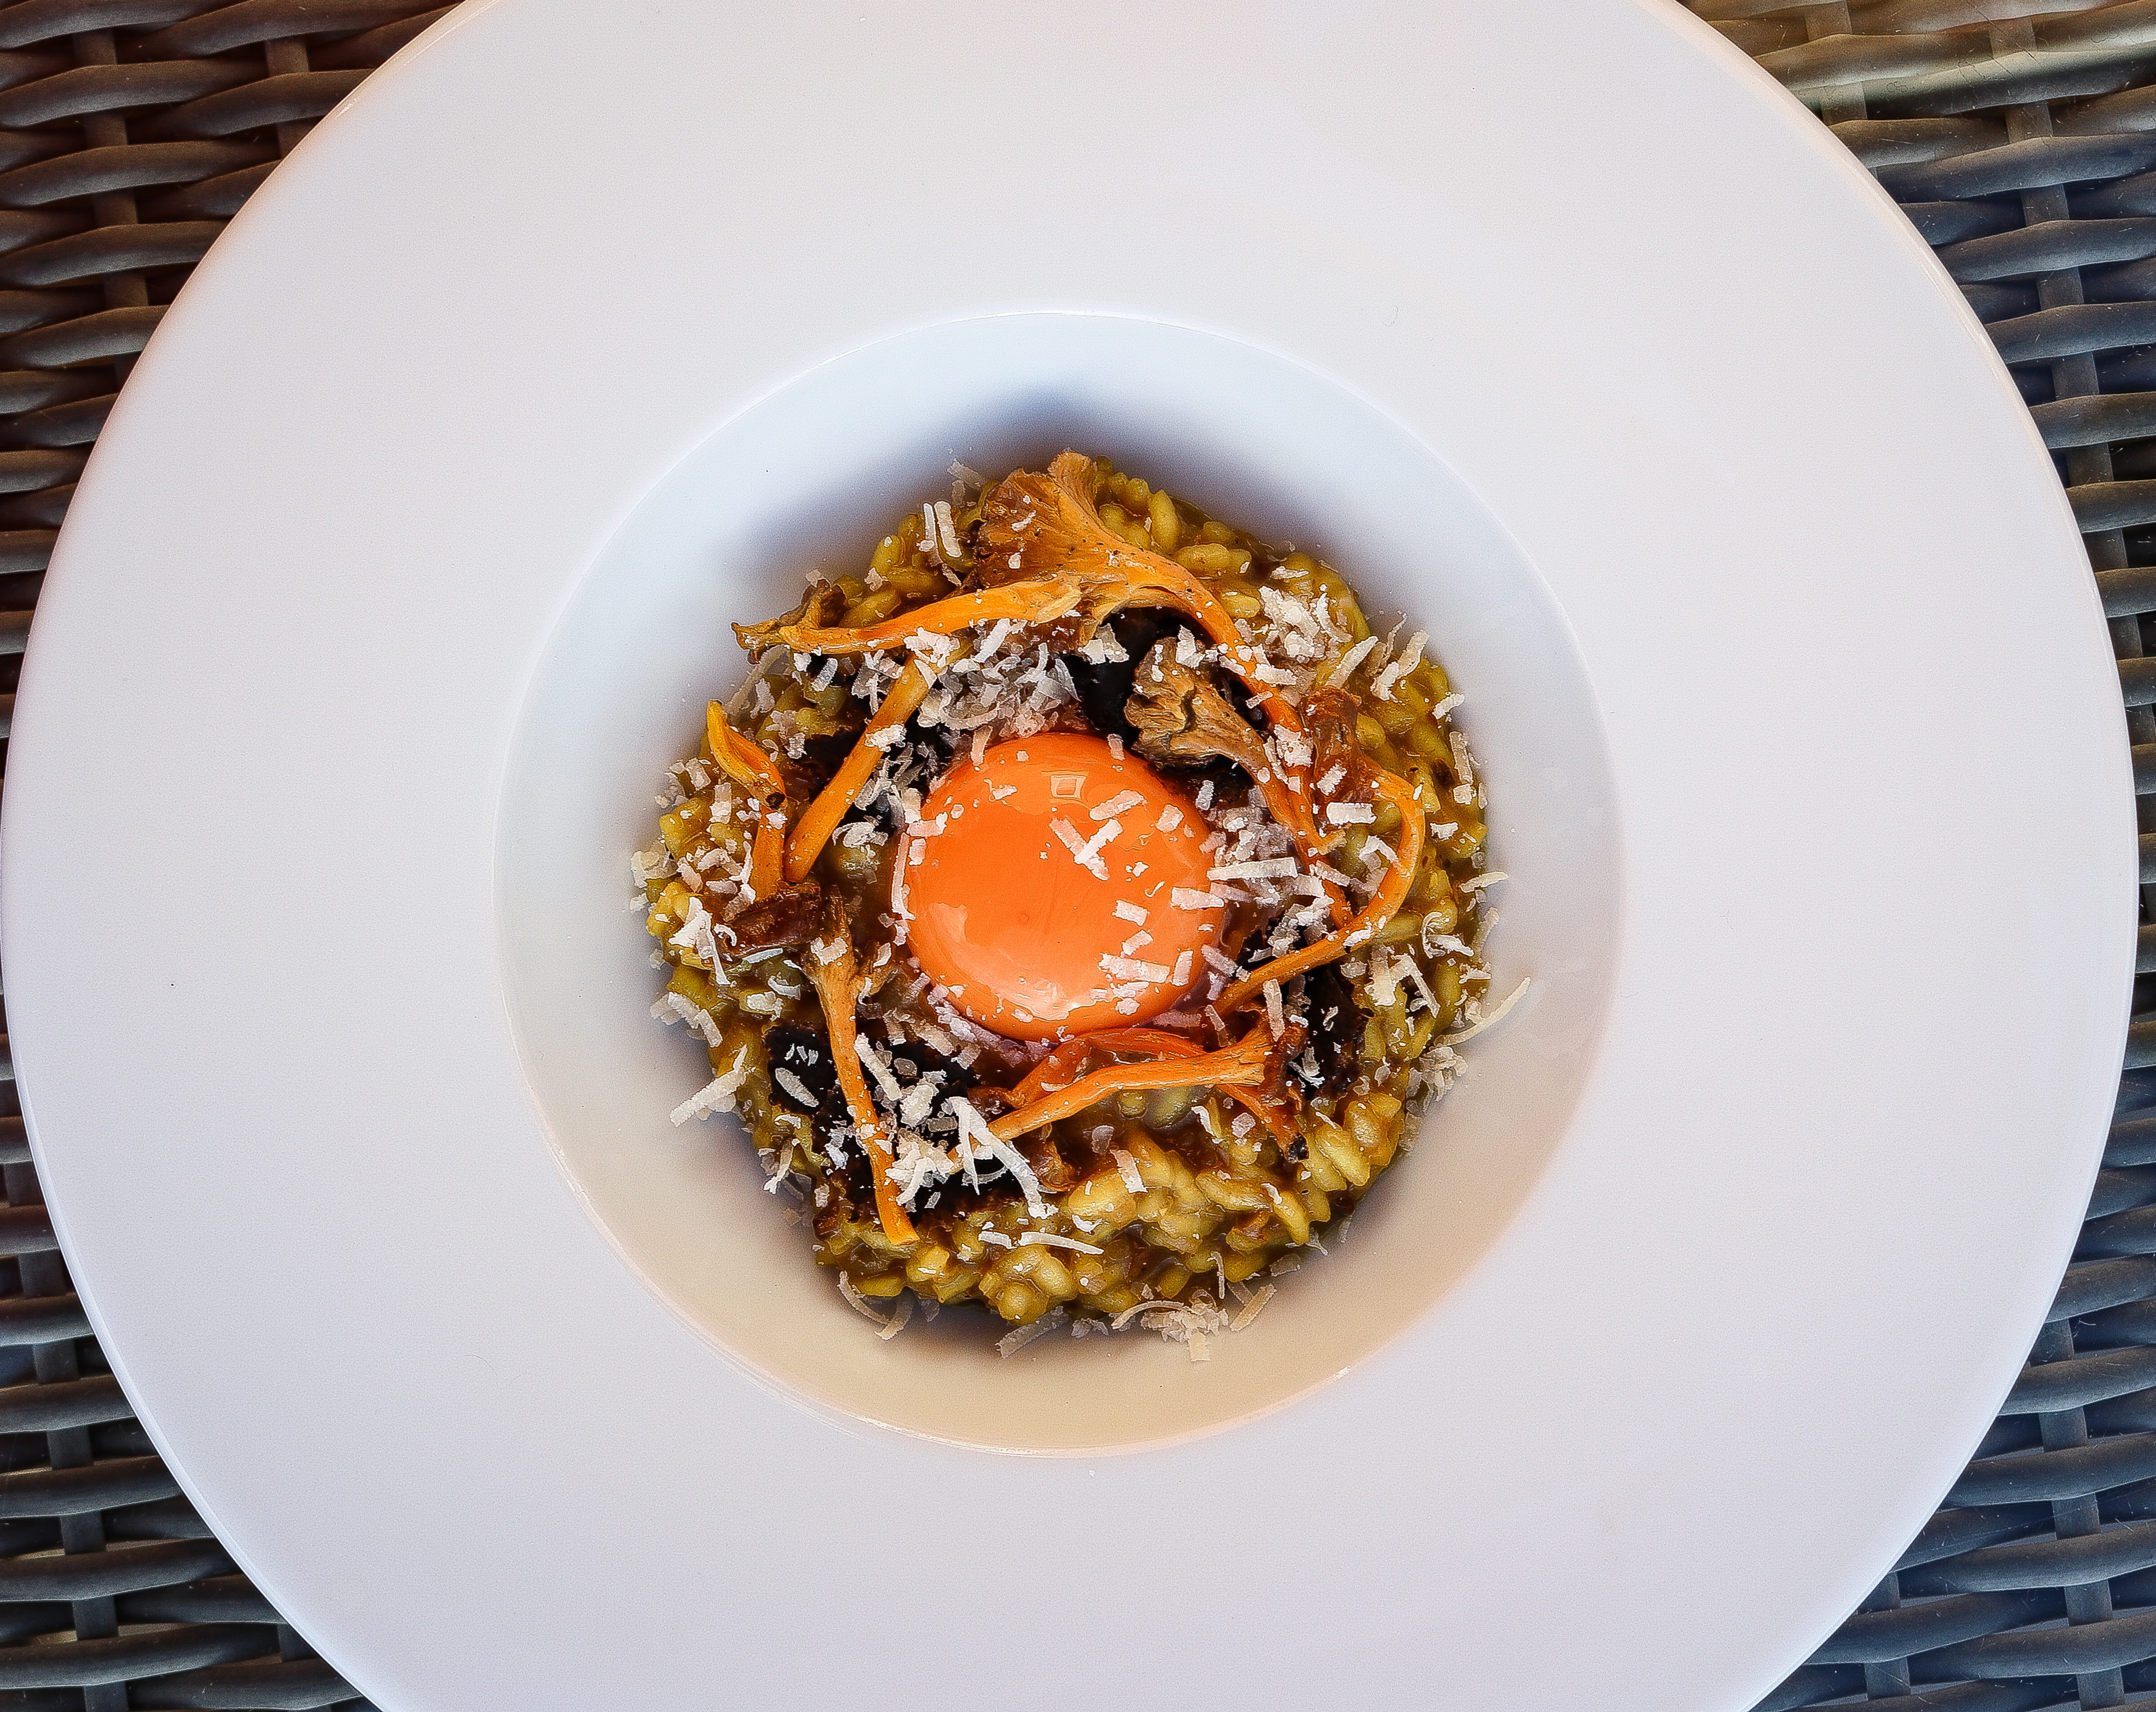 Winter Chanterelle Risotto with Black Truffle and Smoked Confit Egg Yolk